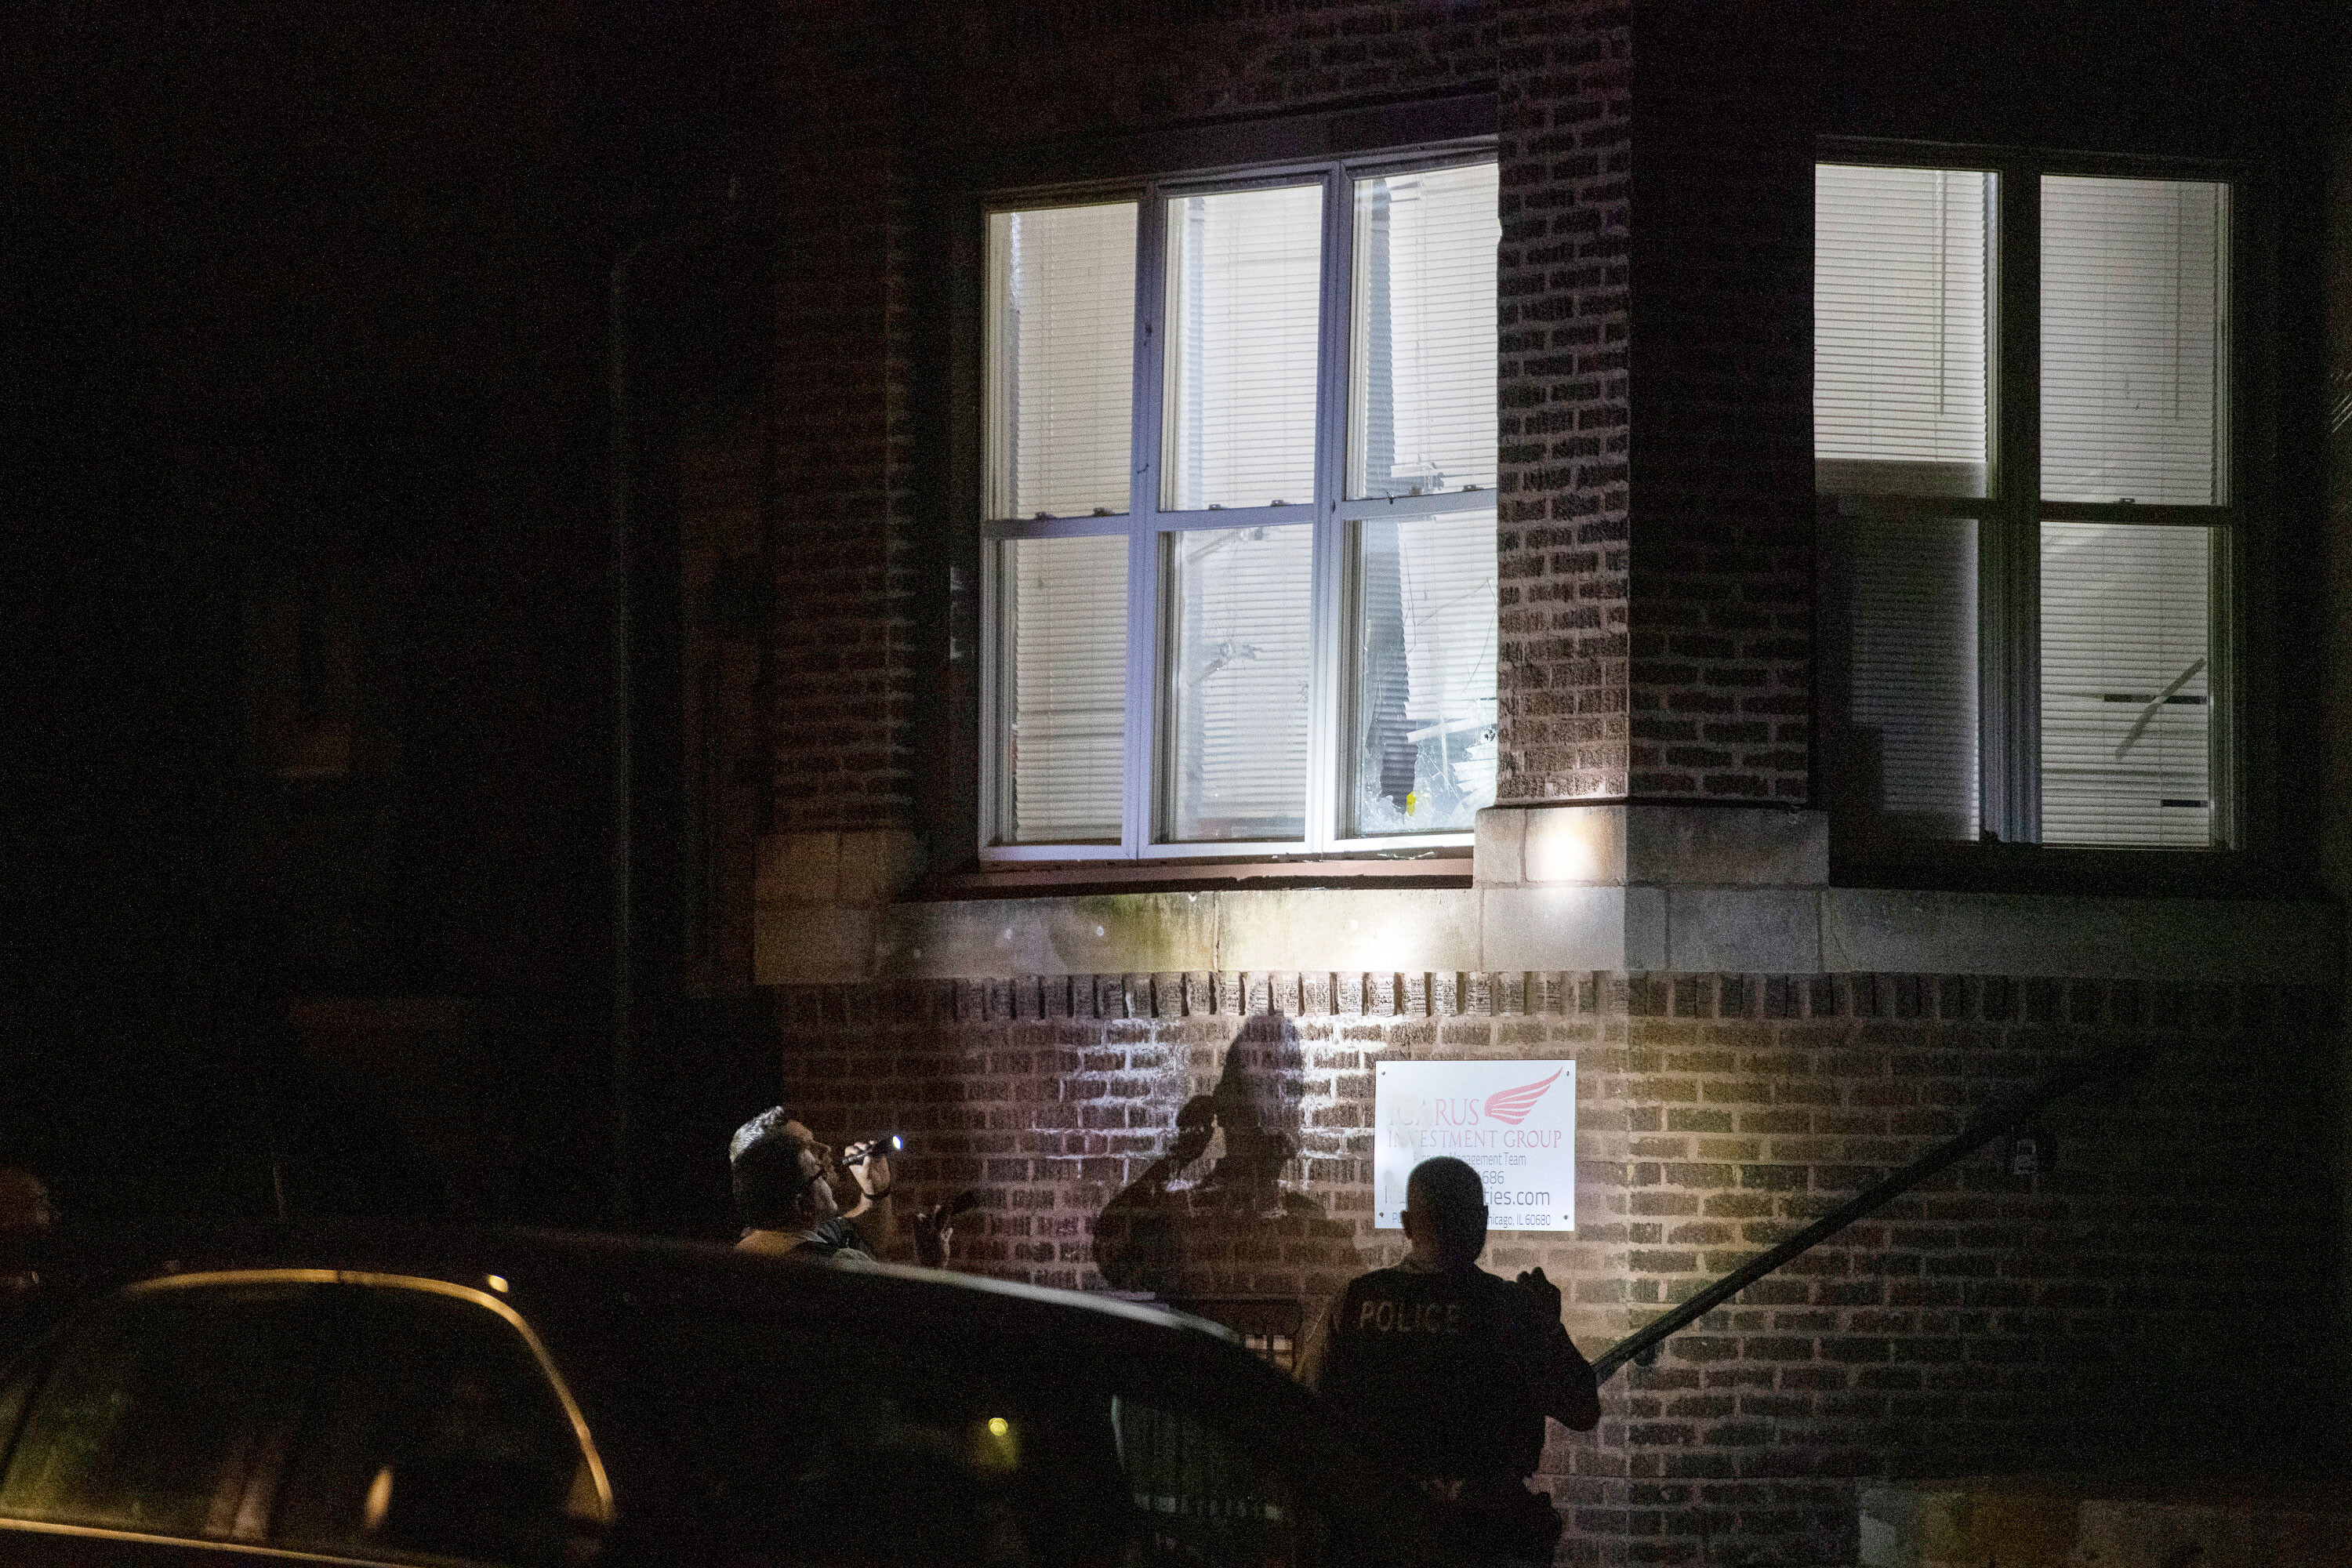 13 injured, including 4-year-old, in at least 9 Chicago shootings overnight